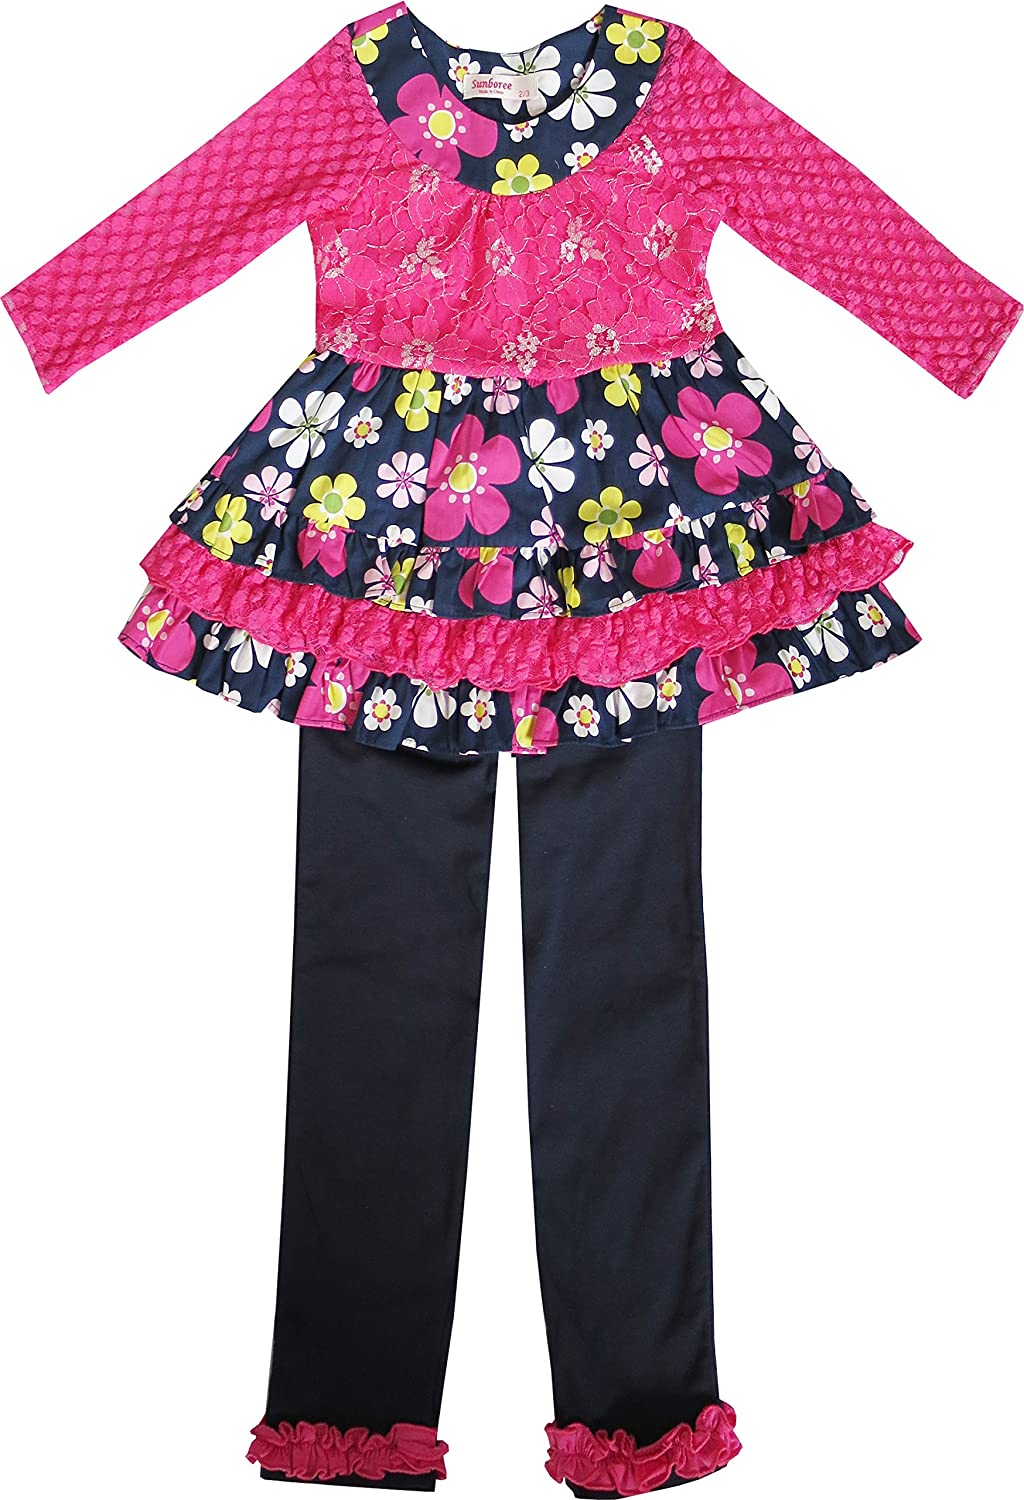 Sunny Fashion Girls Outfit Set 2 Pecs Shirt Legging Pink Flower Everyday